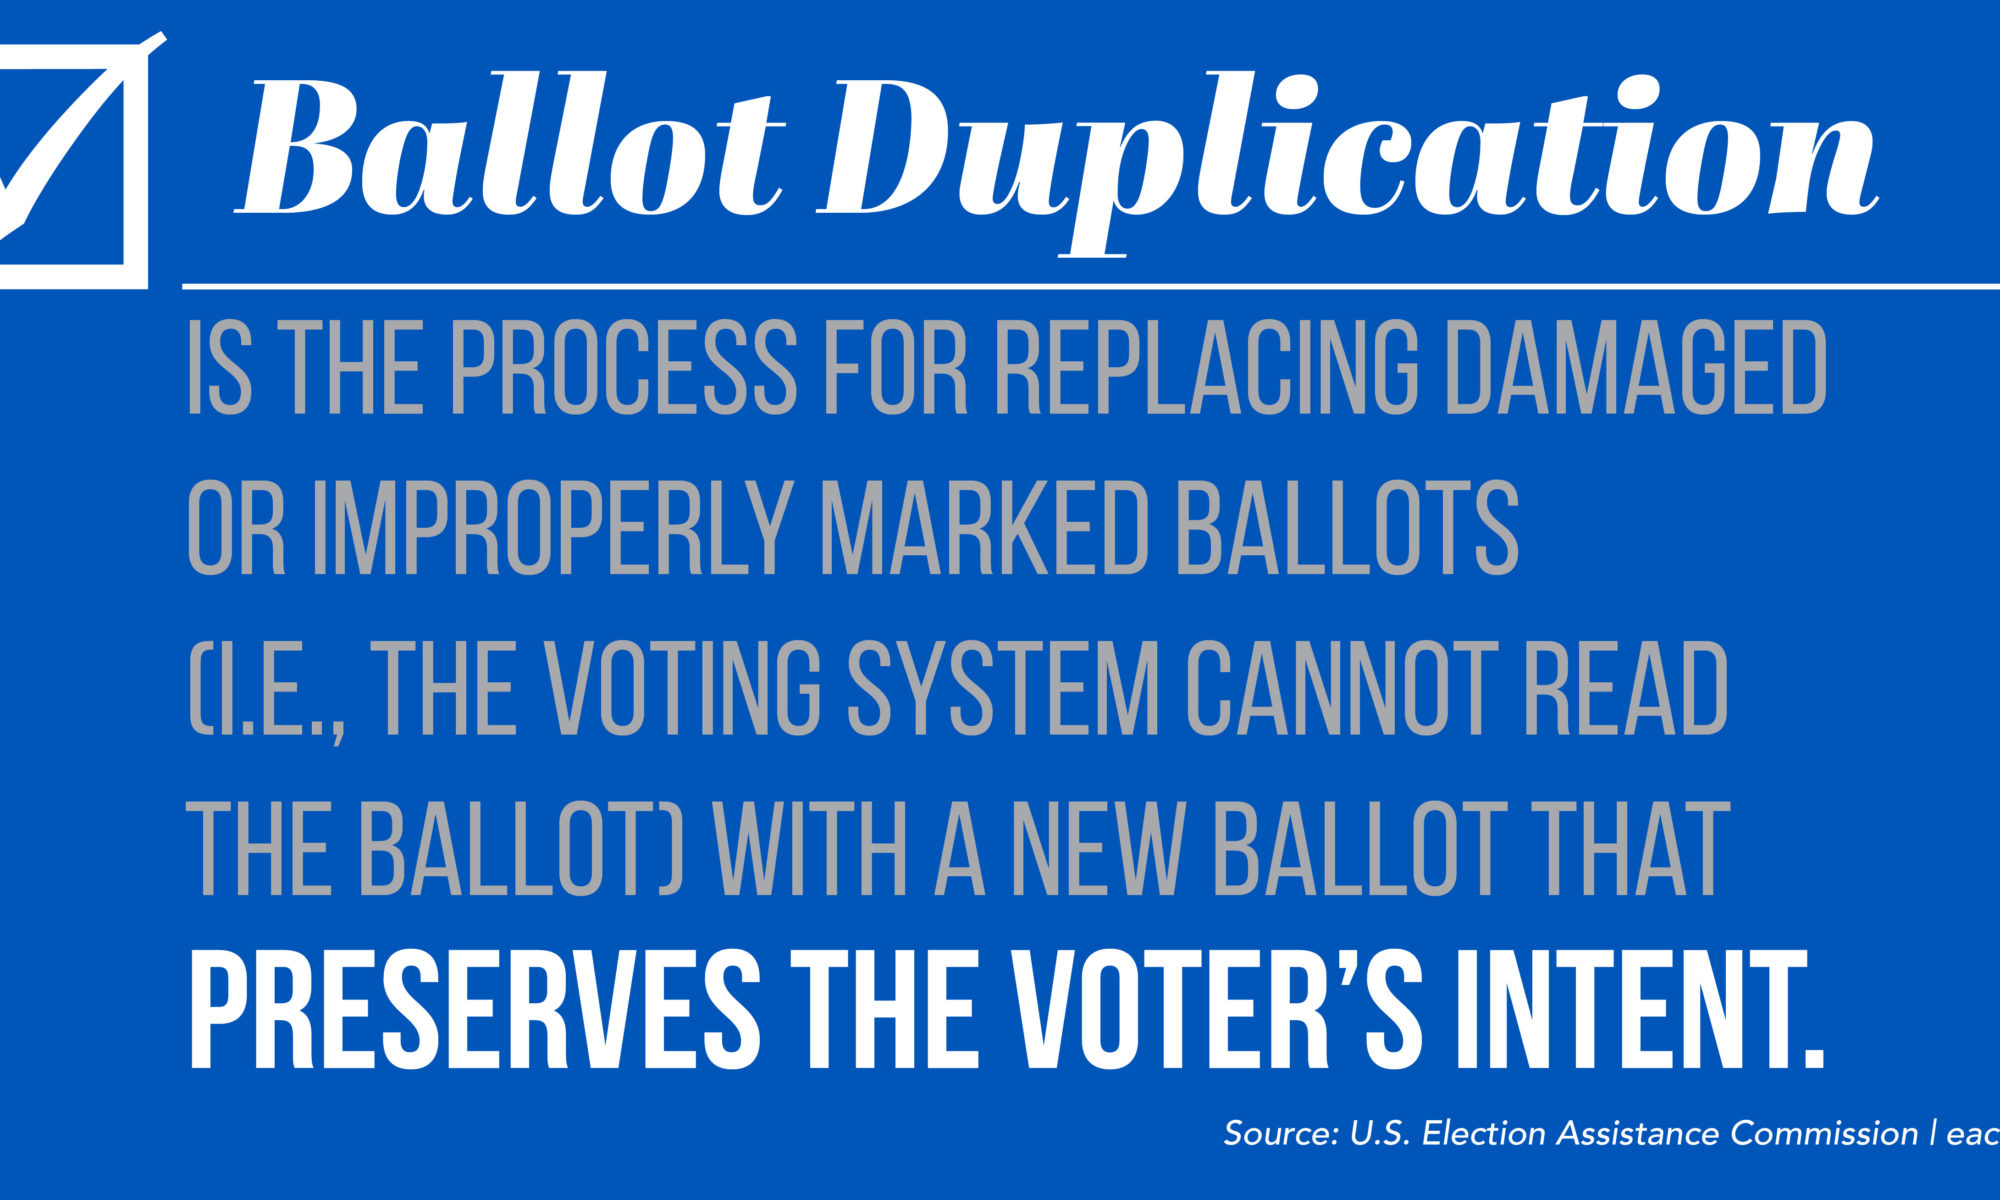 Definition of ballot duplication